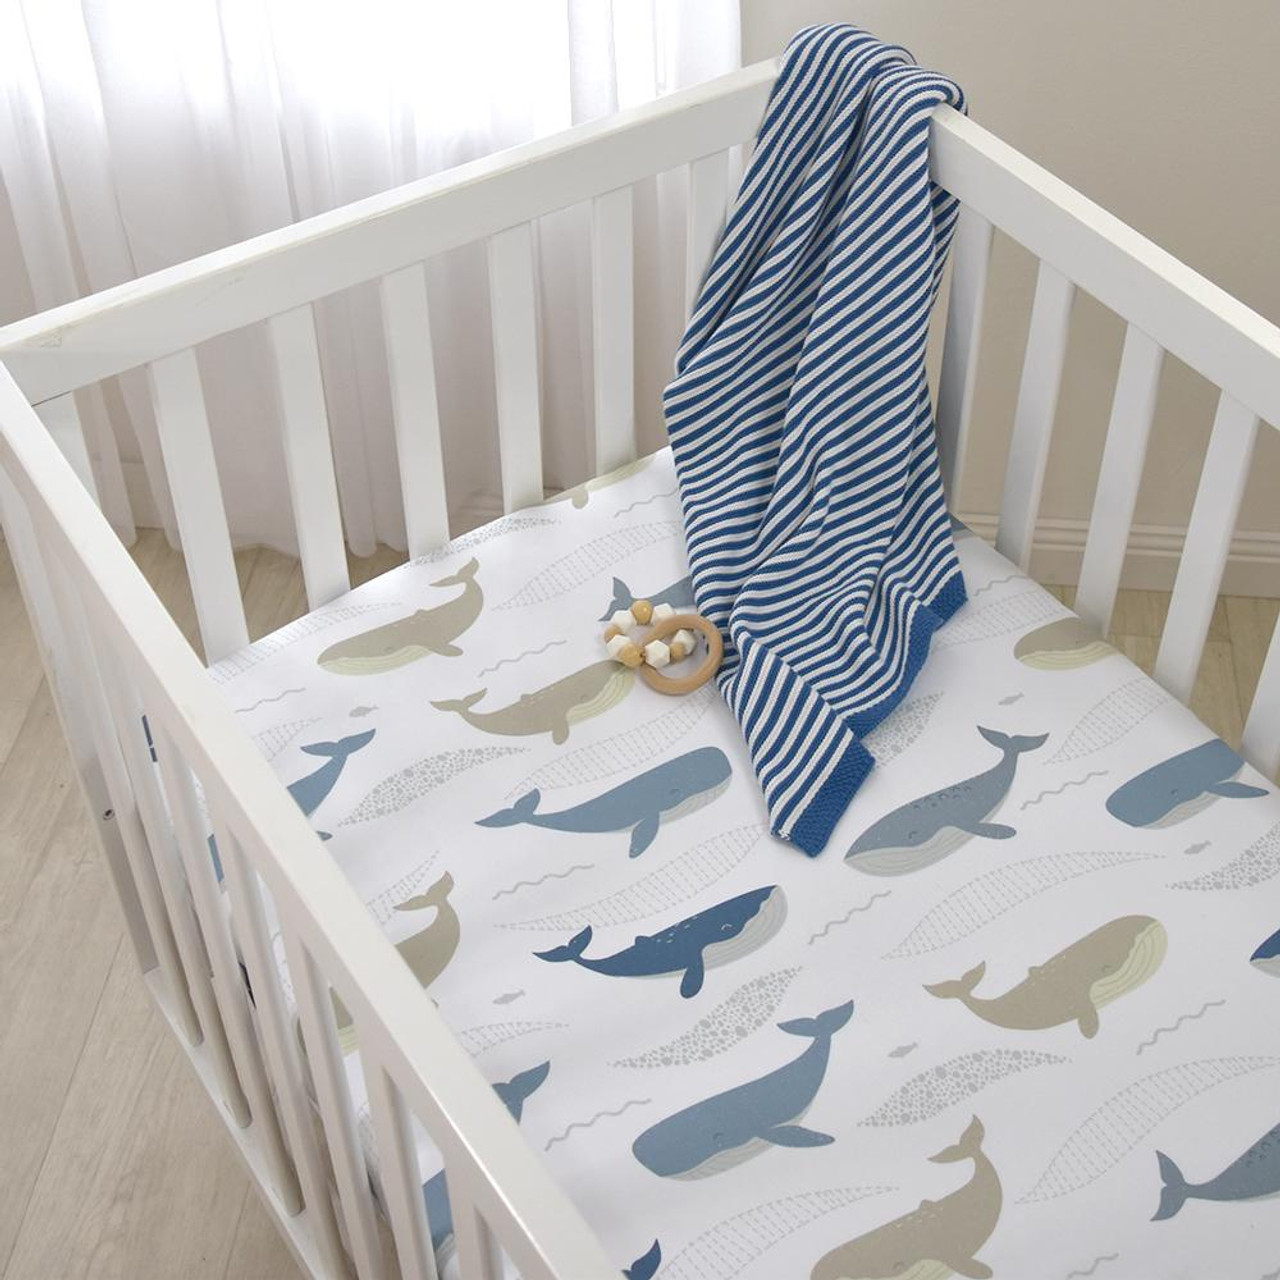 Lolli Living 4pc Nursery Set Oceania at Baby Barn Discounts Lolli Living oceania nursery set includes cot quilt, 2x fitted sheets & pillowcase.